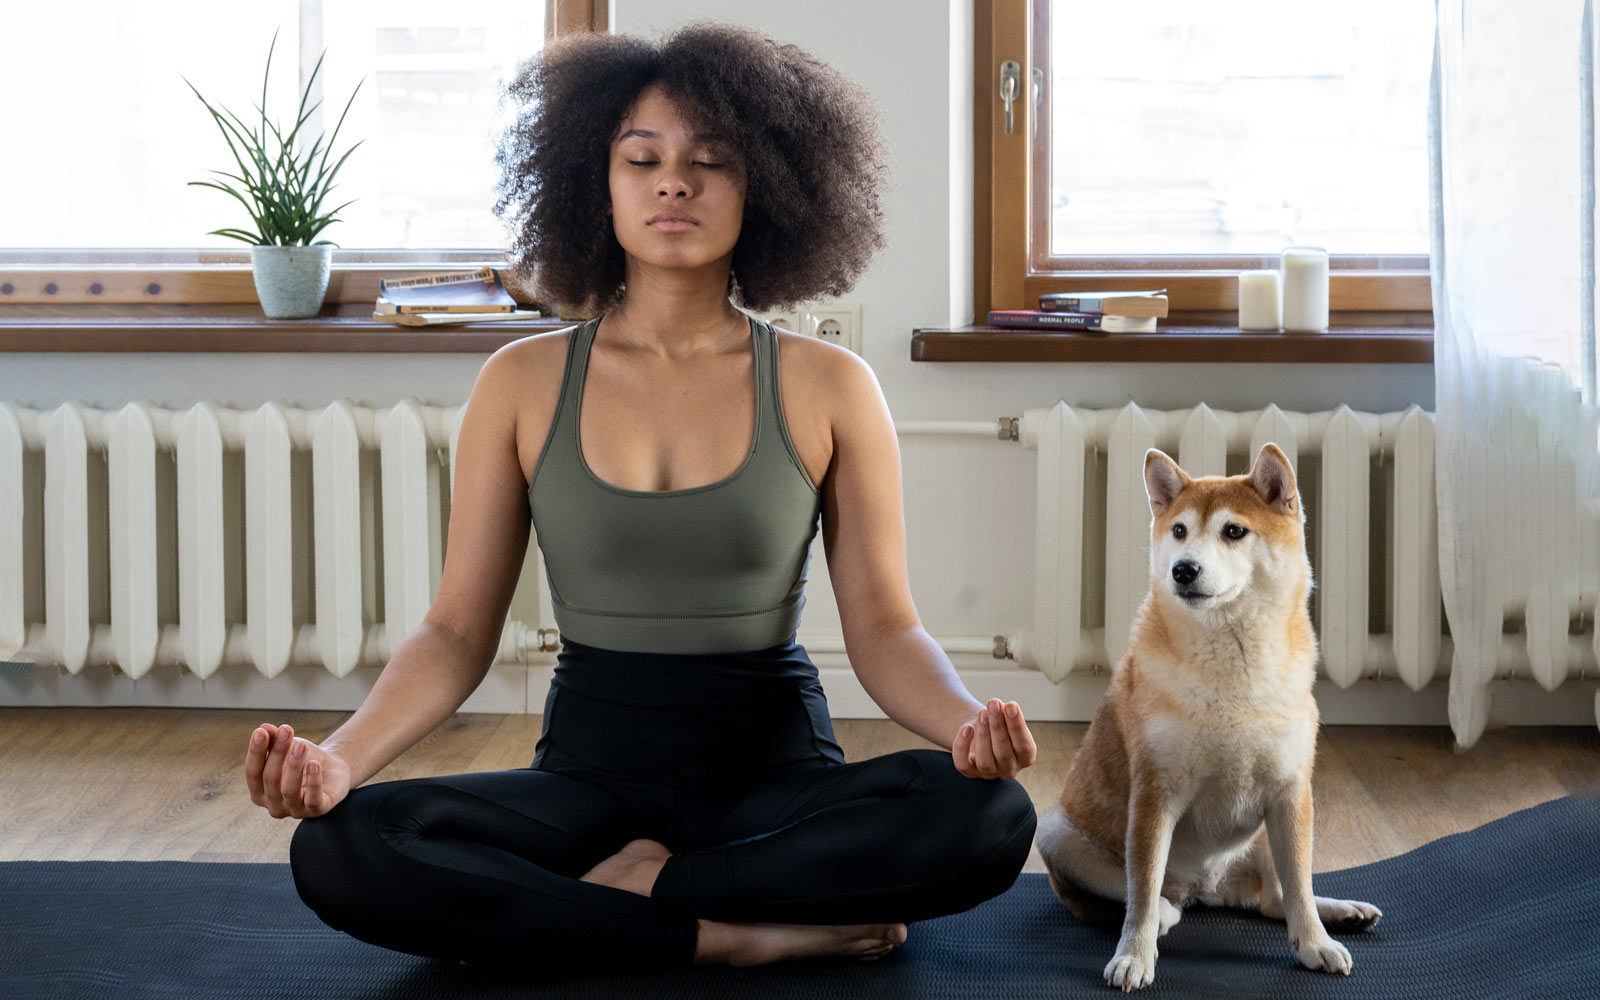 a woman at home in lockdown meditating on a yoga mat with a dog